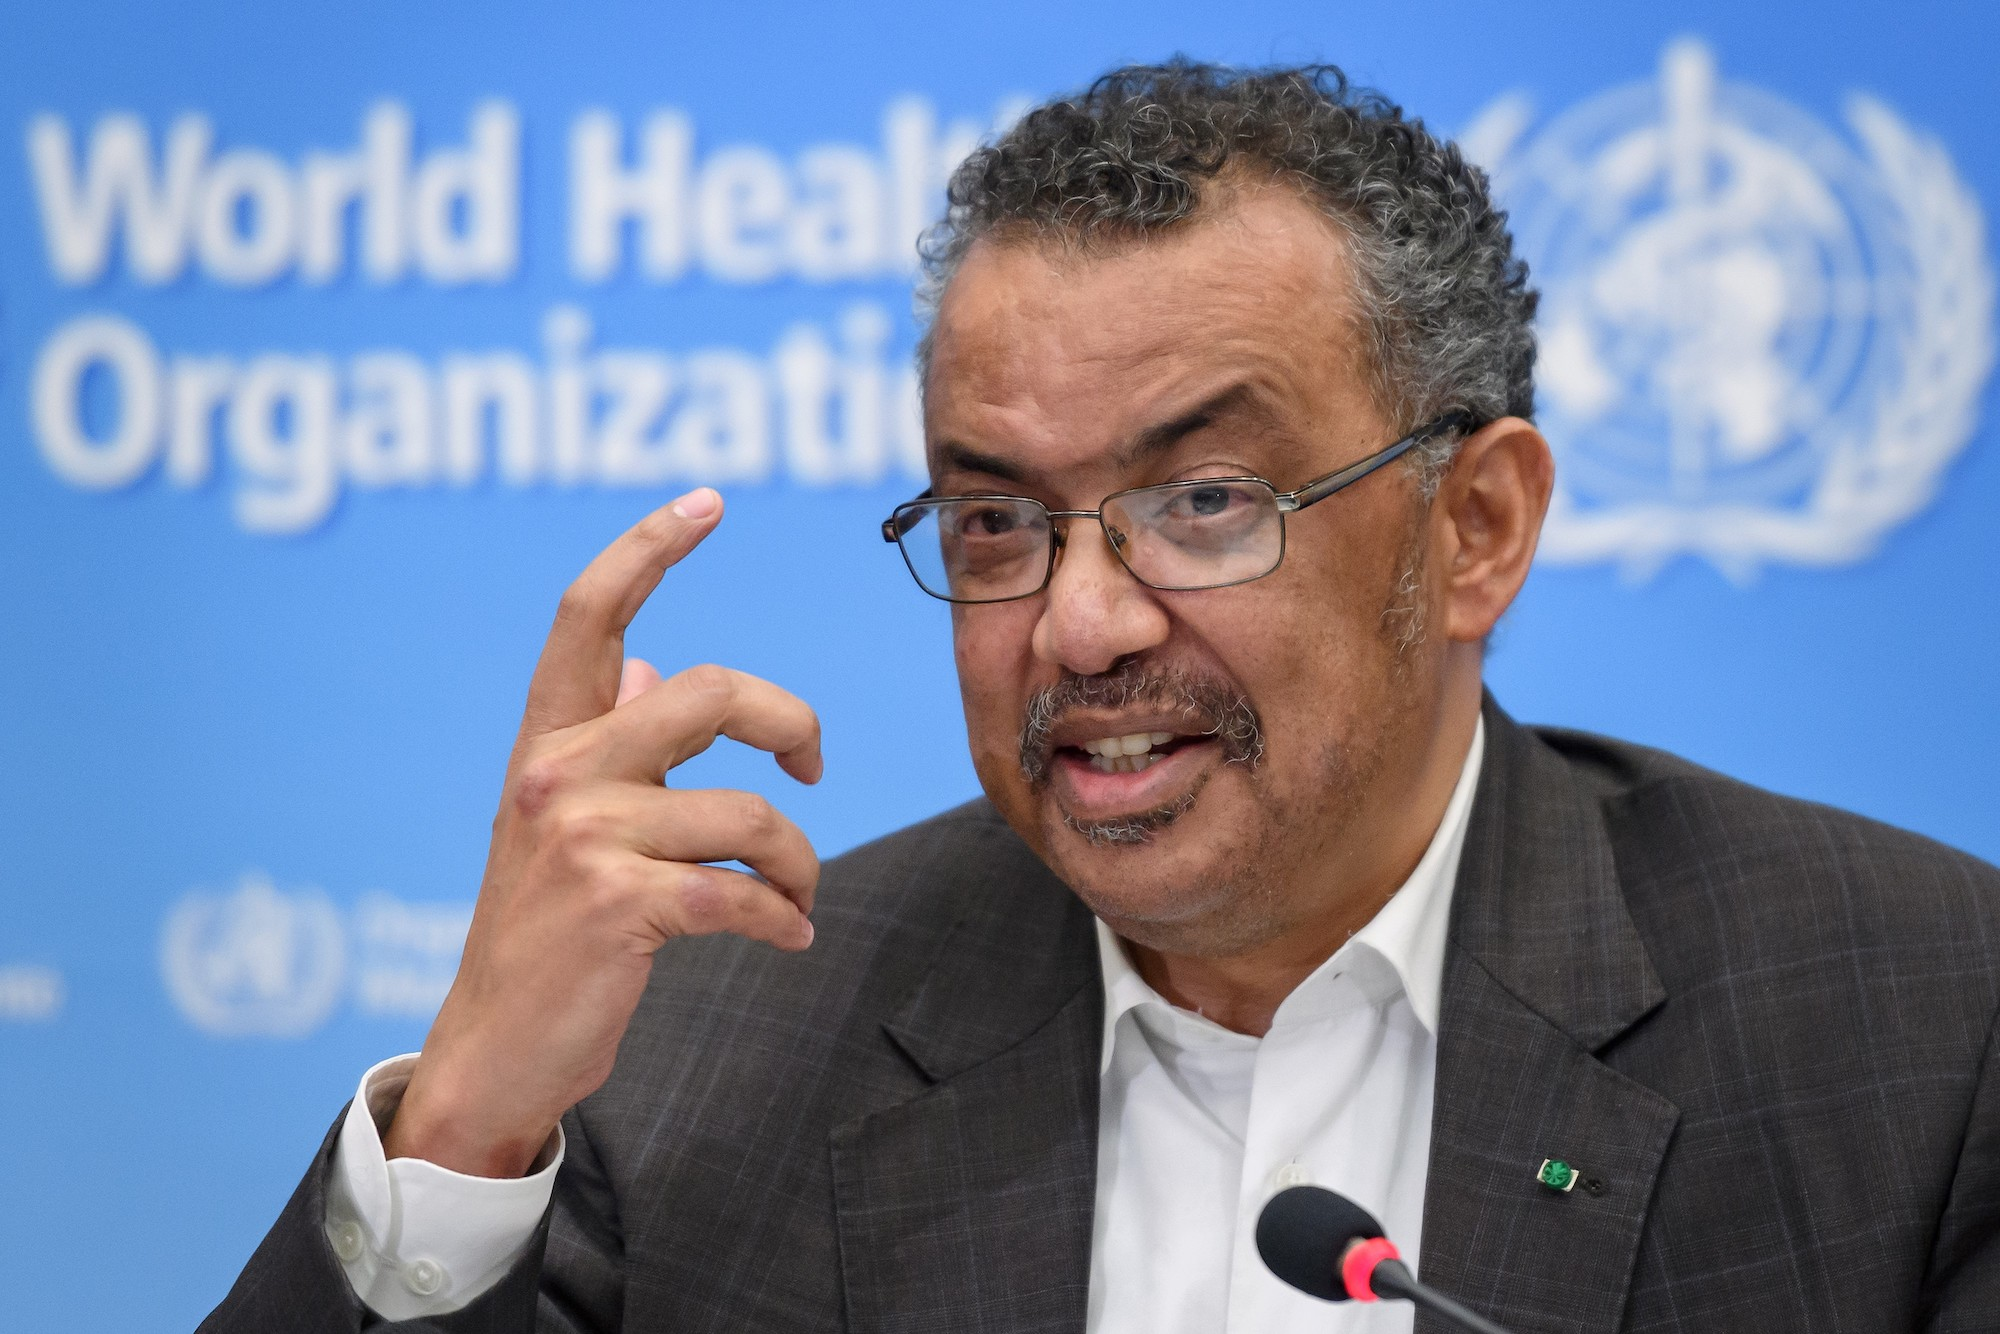 WHO leader is stuck between feuding China and US. It's a situation 'rock star' Tedros has spent his life preparing for